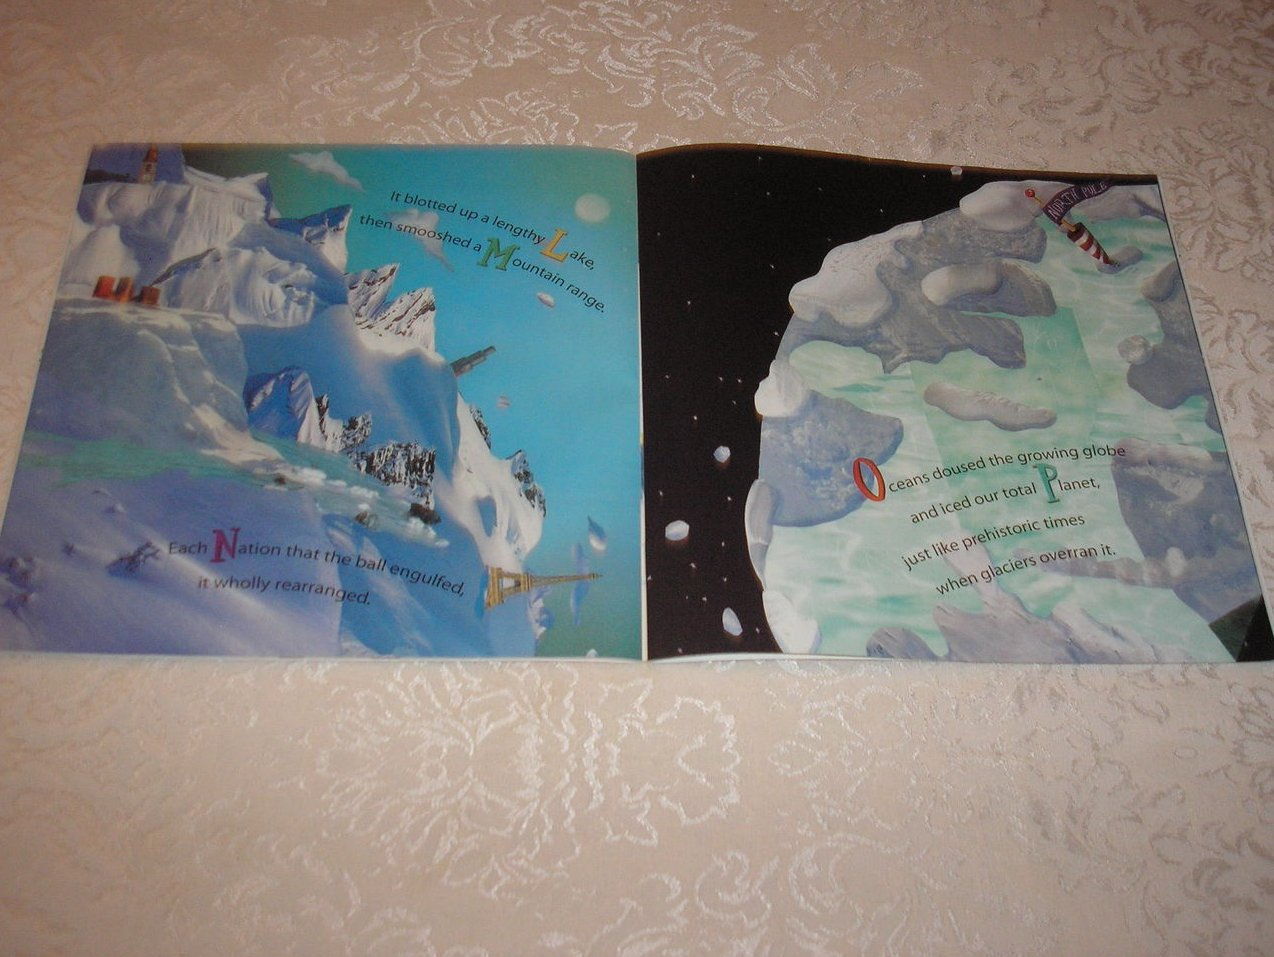 Image 4 of Avalanche Michael J. Rosen Good Rare Alphabet Softcover